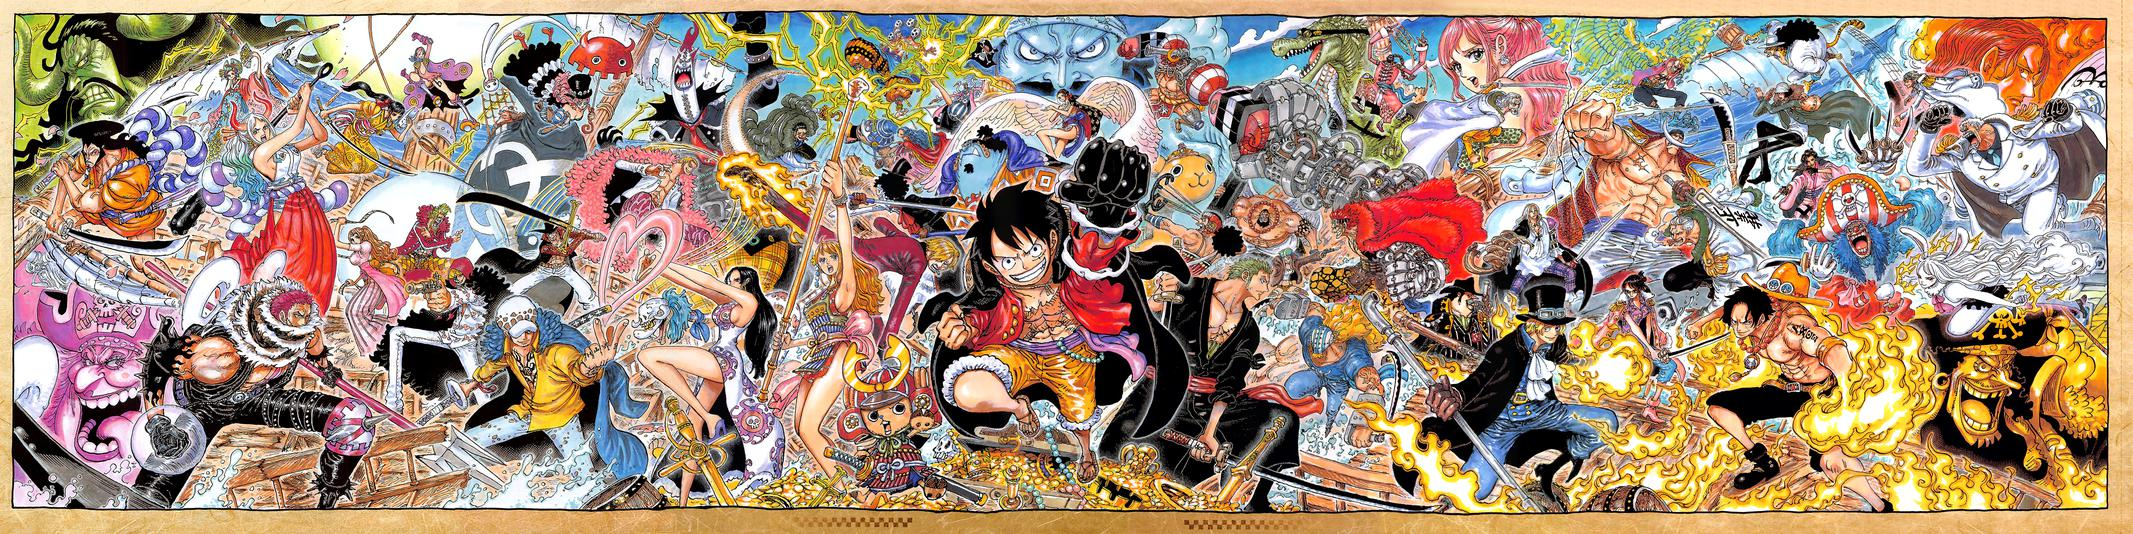 One Piece, Chapter 1025 image 04